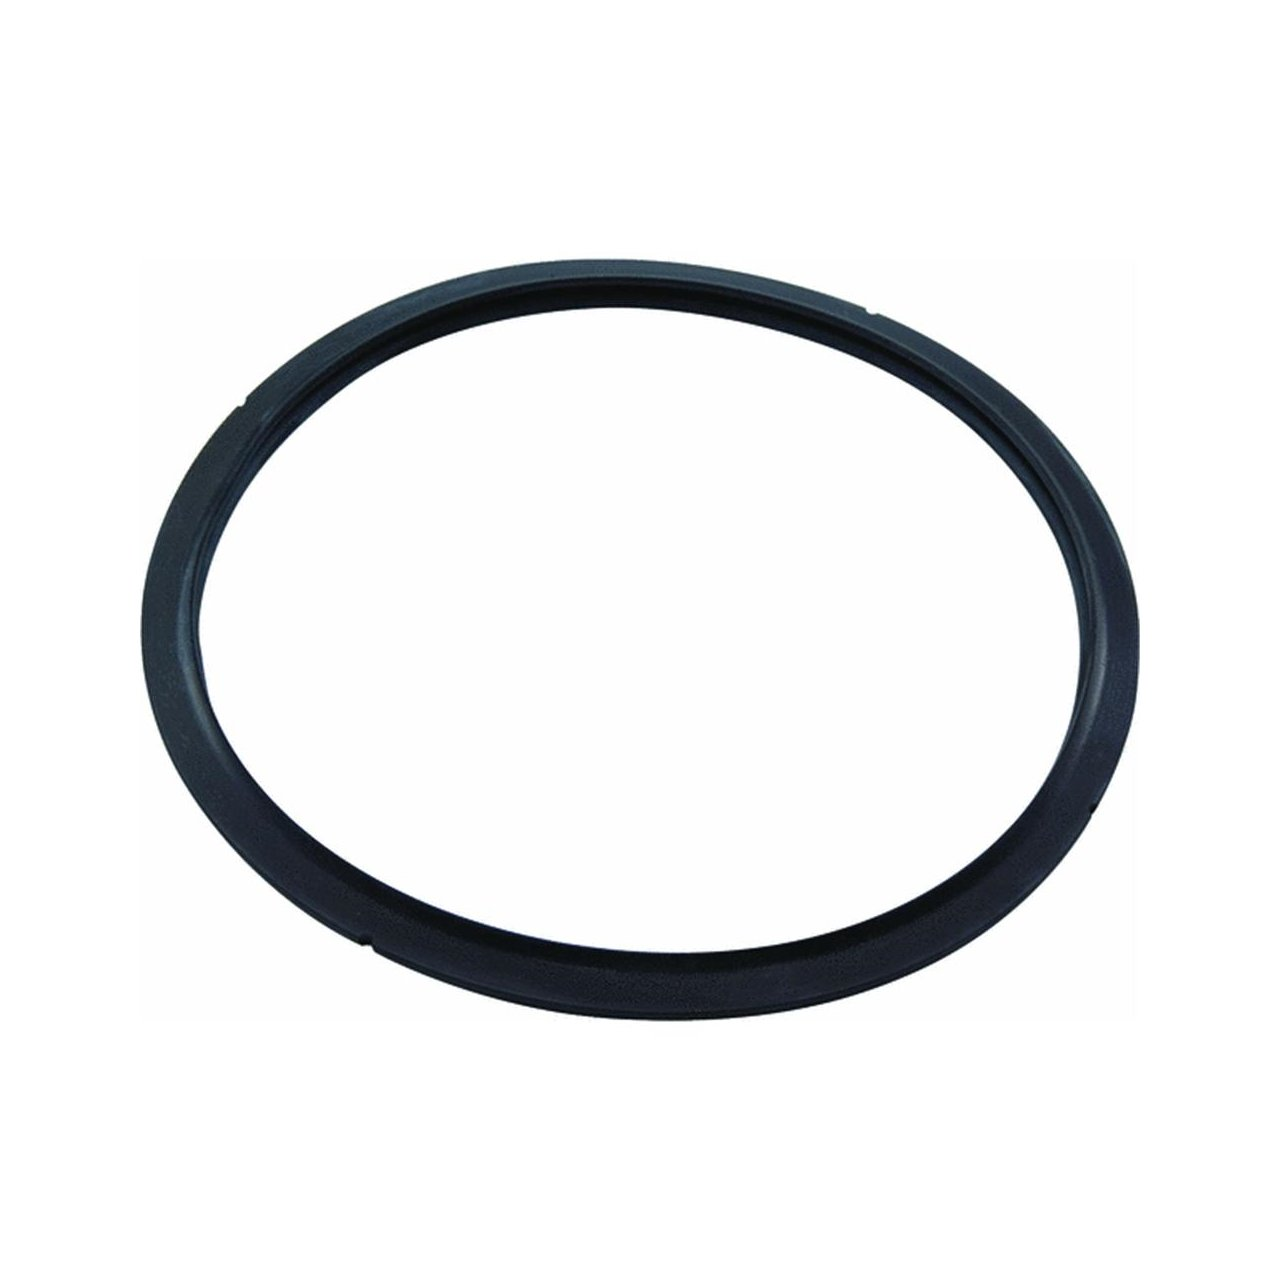 Mirro 2100043693 Self-Sealing Gasket for Pressure Cooker, 12-Inch Black